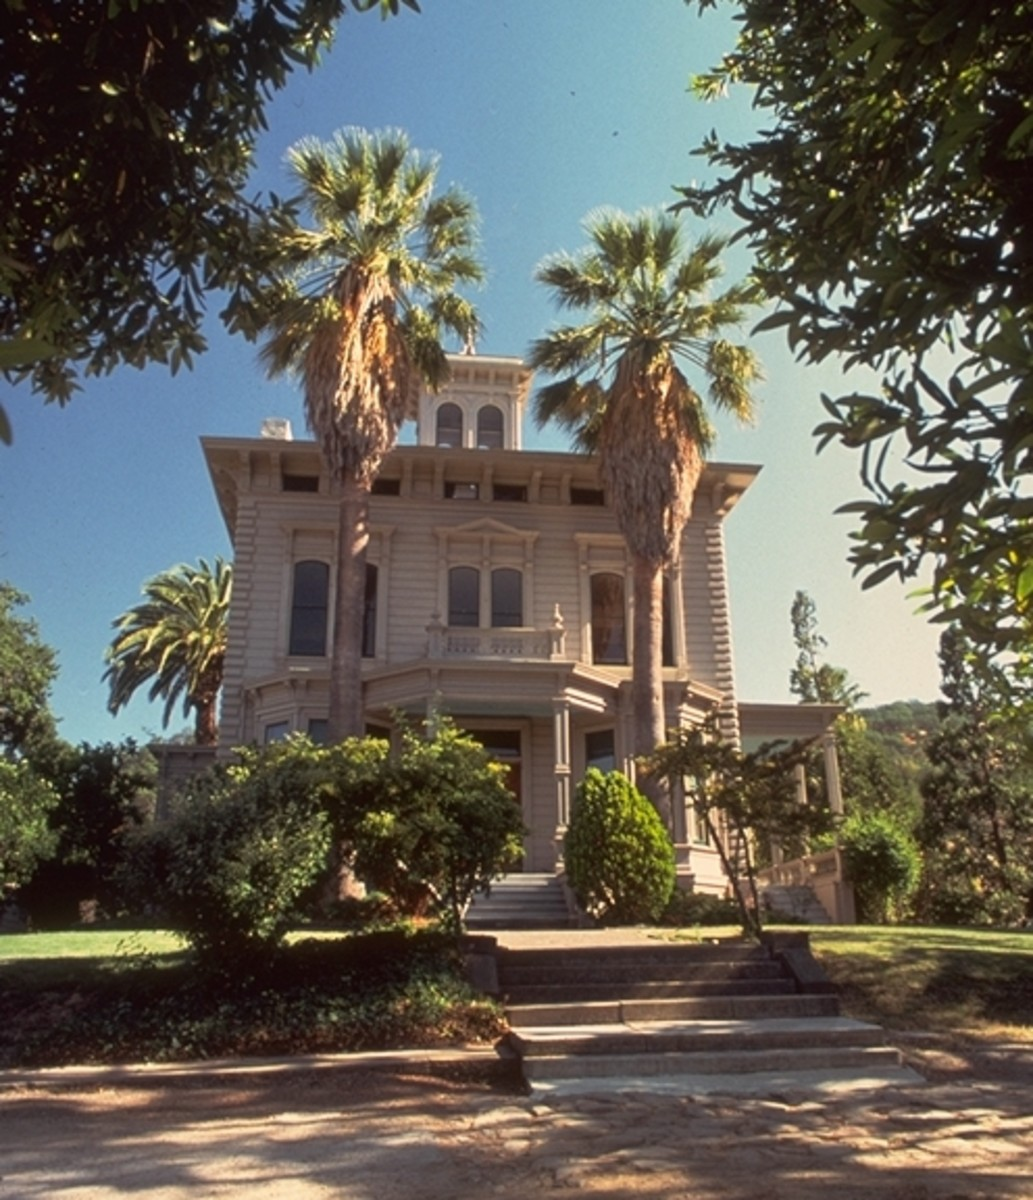 This is the Victorian residence of scientist, philosopher and conservationist John Muir from 1890 till his death 1914